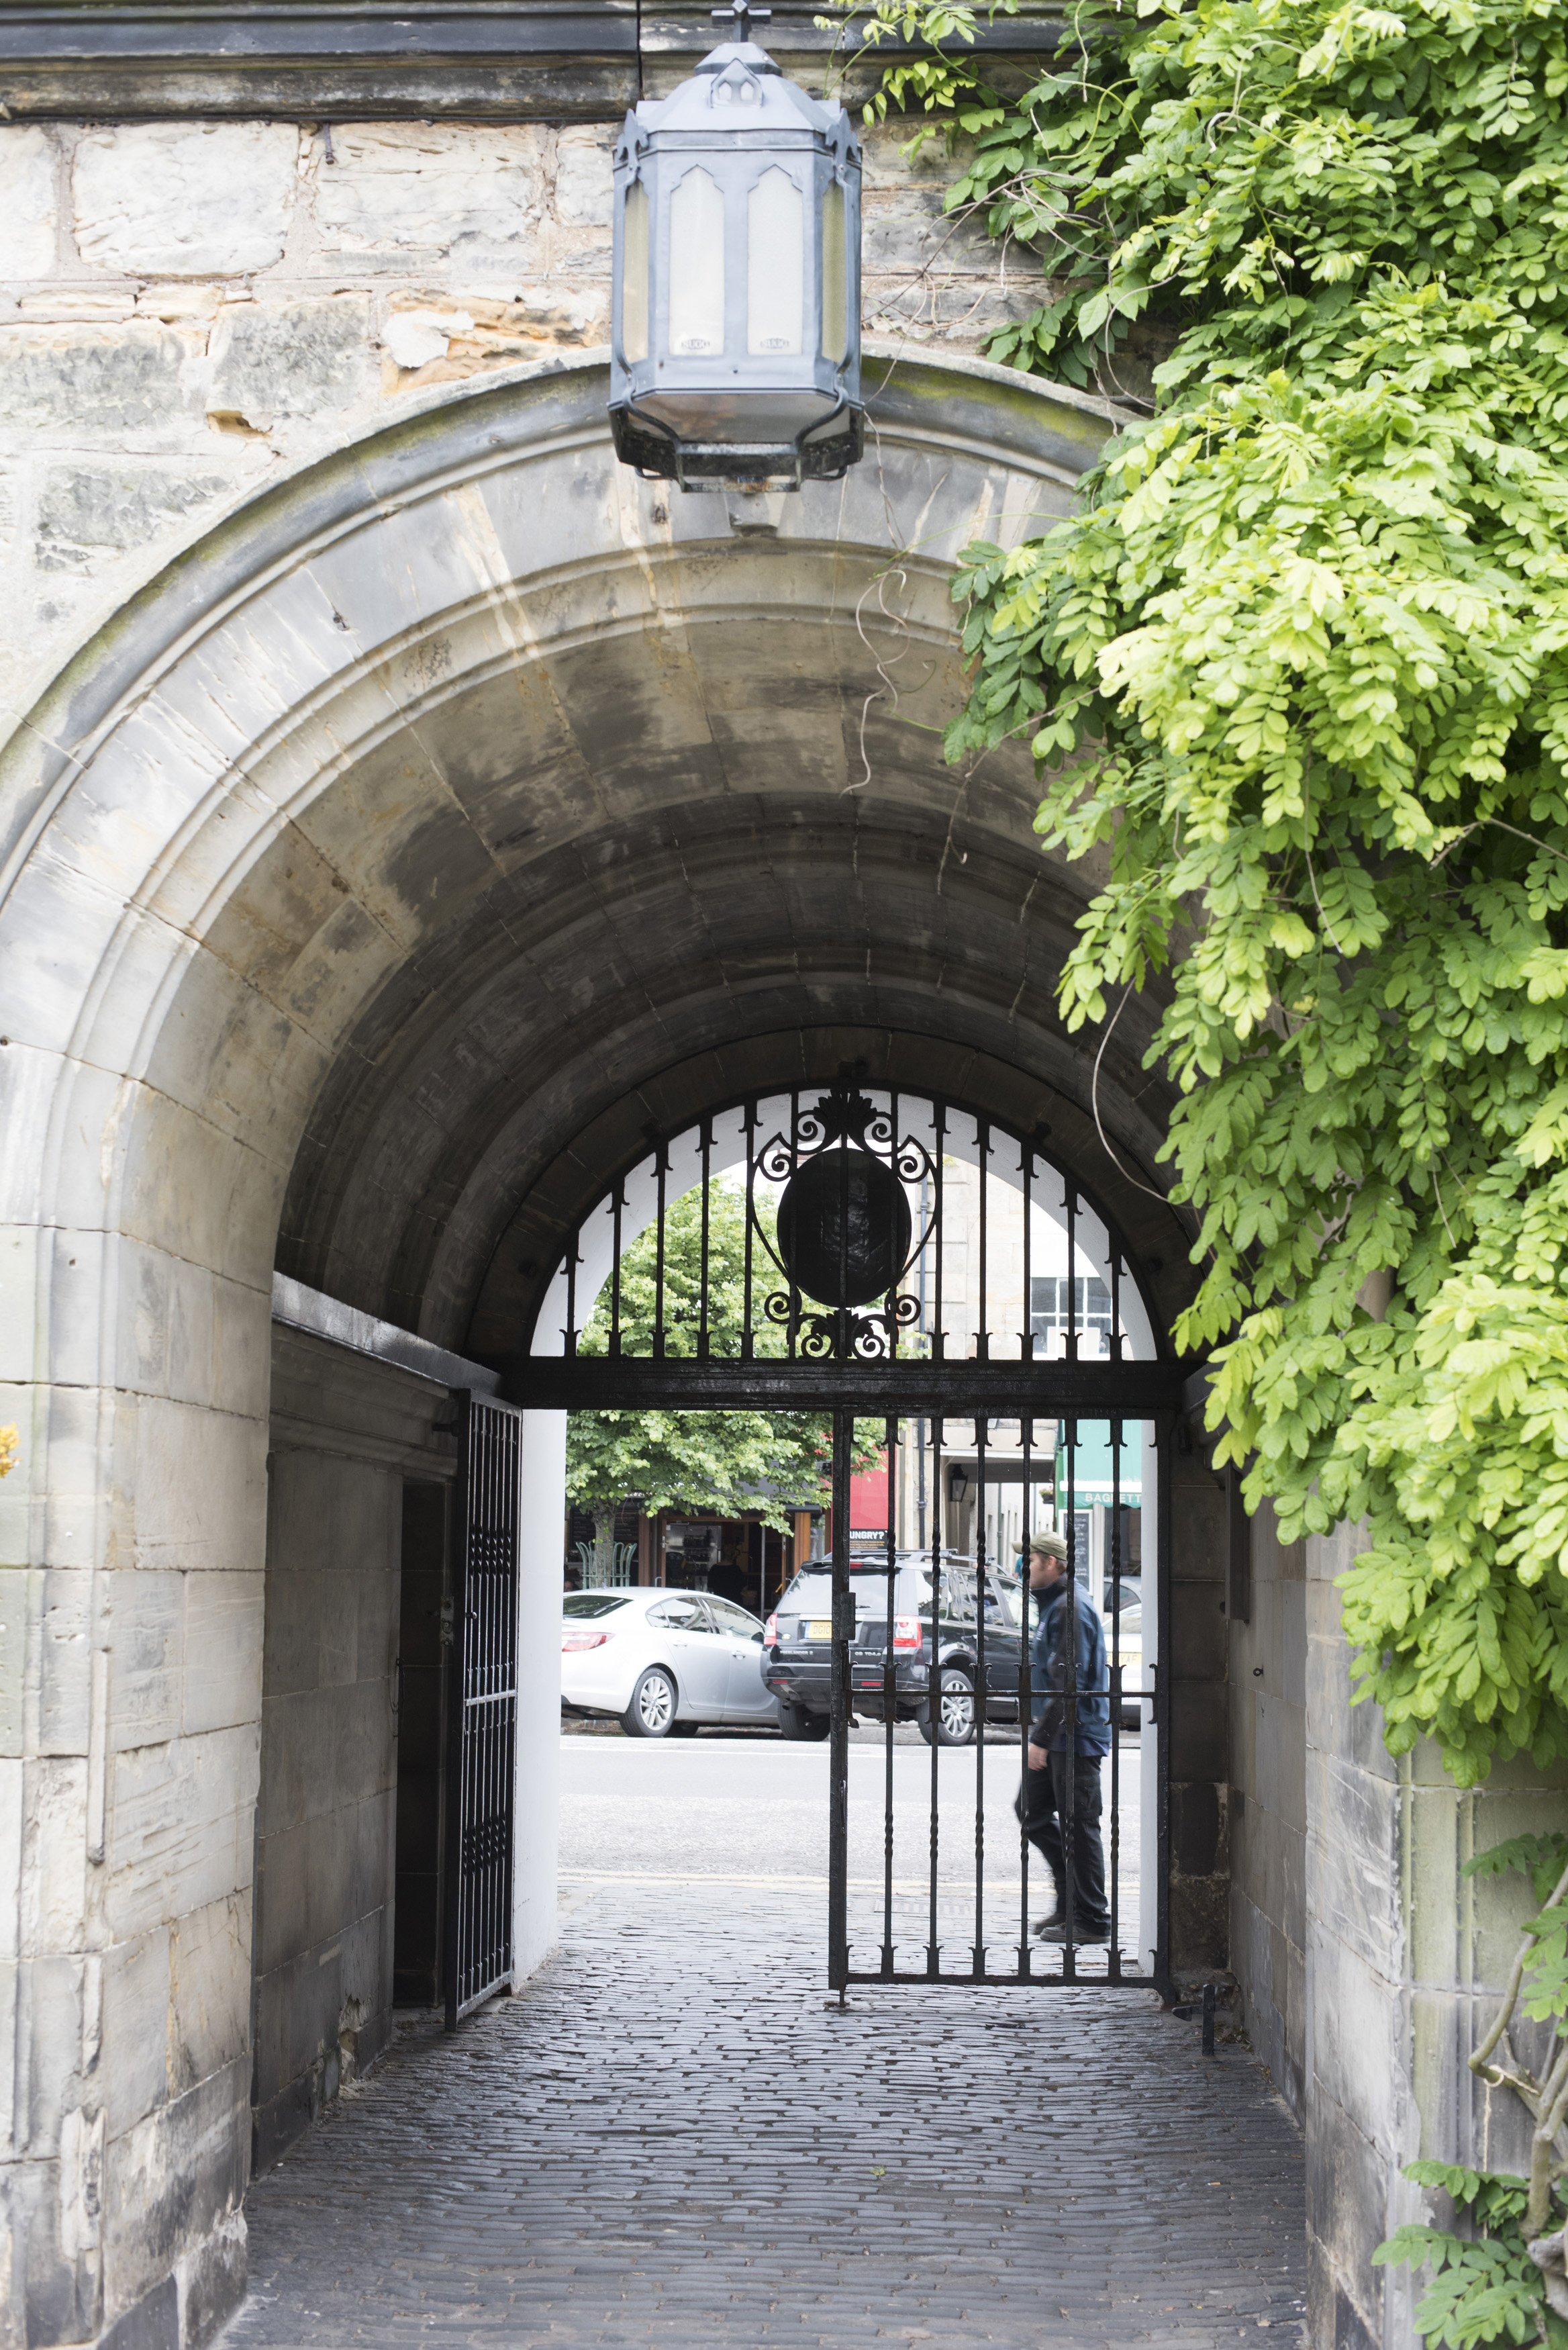 Iron gate and stone archway at the historic European landmark University of Saint Andrews in Scotland